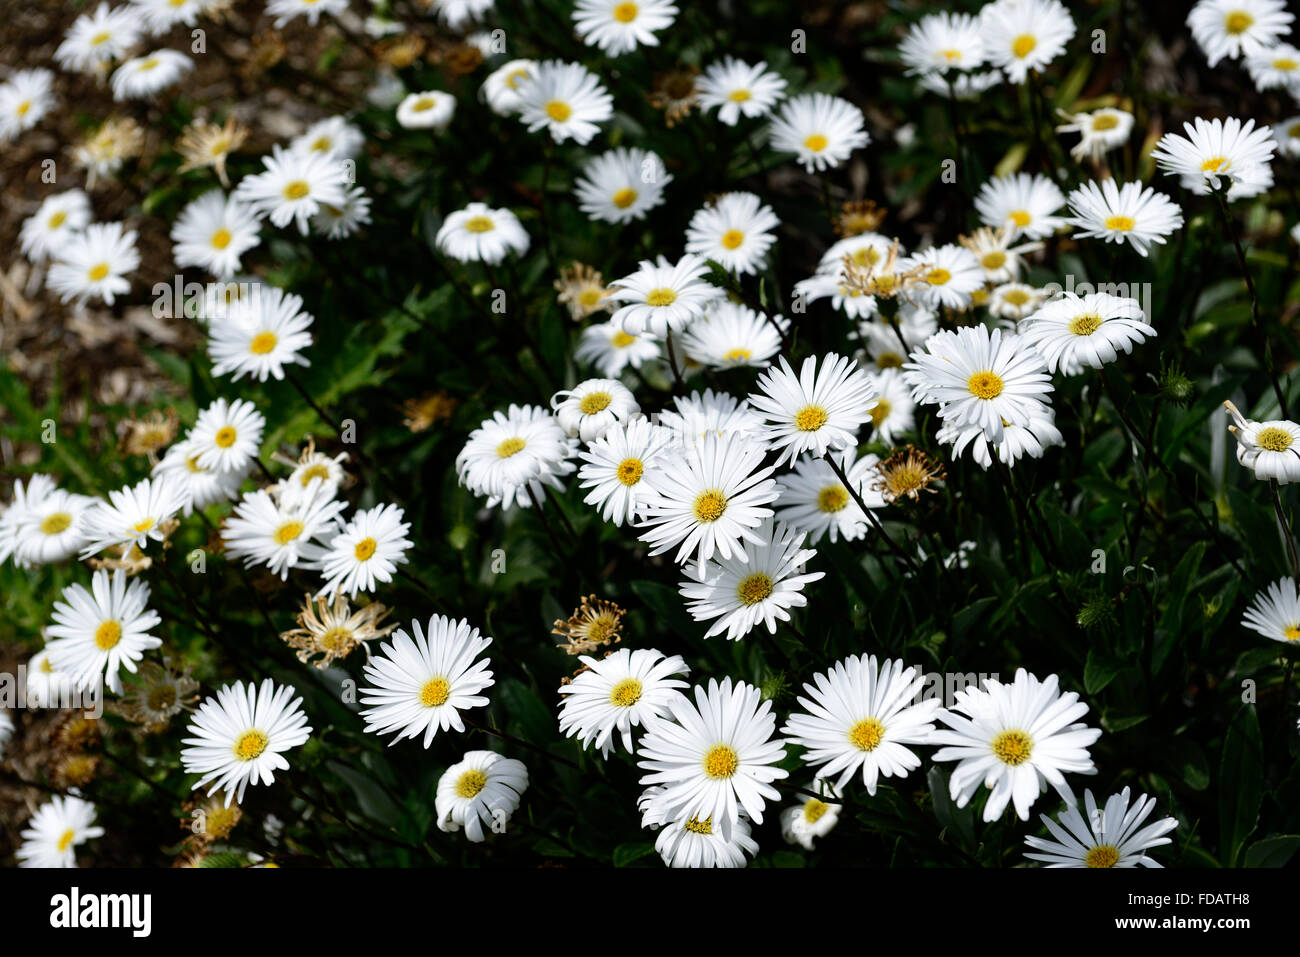 celmisia lindsayi lindsay's daisy daisies small white flower, Beautiful flower